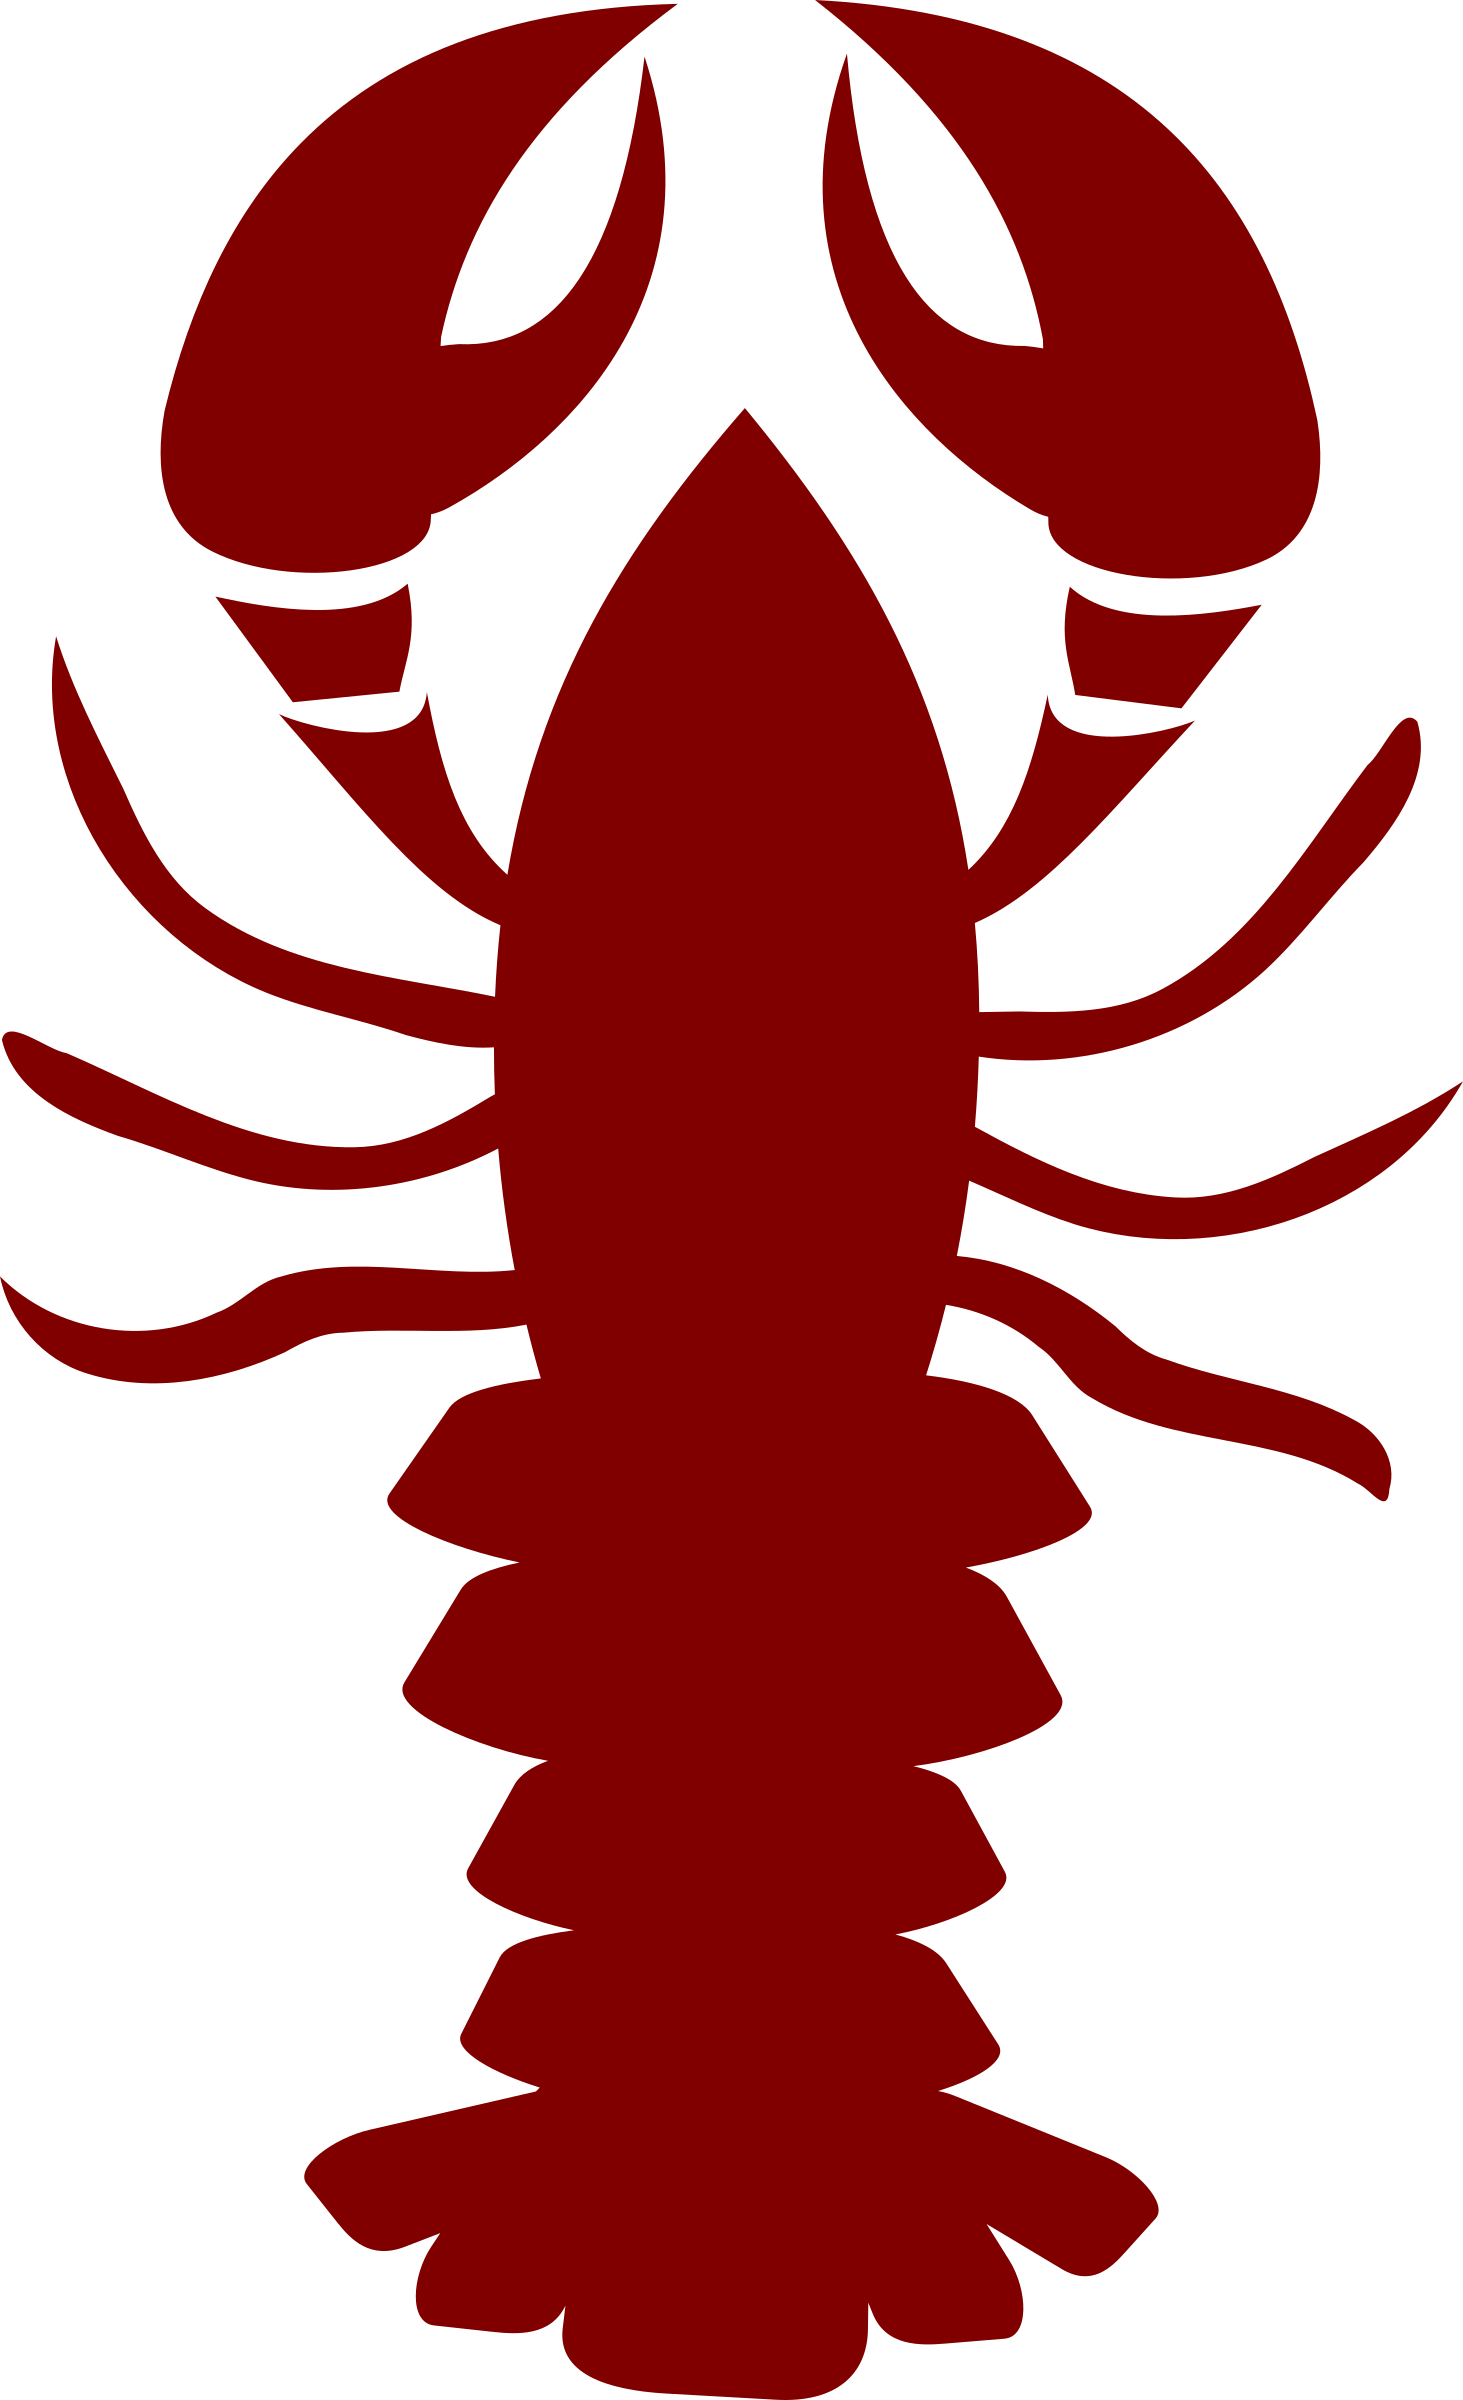 Silhouette clip art at. Lobster clipart lobster roll